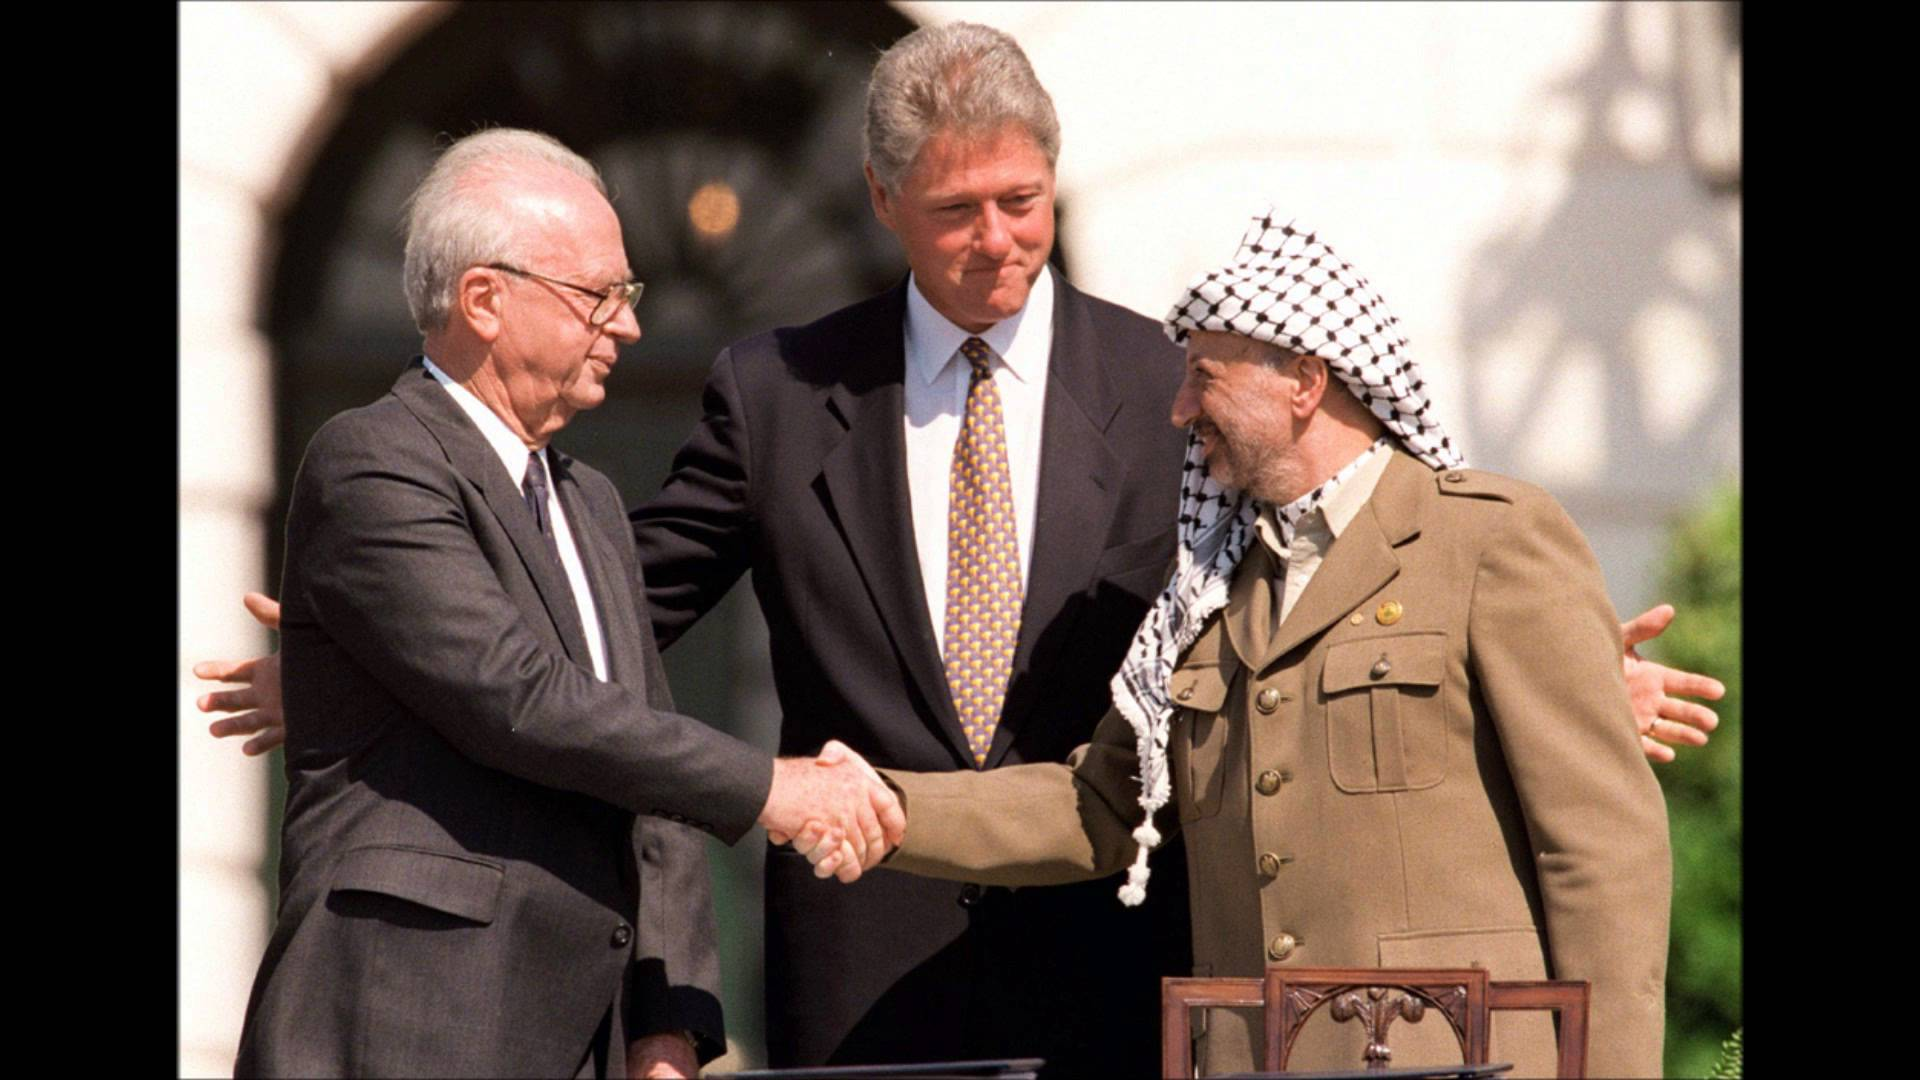 Rabin and Afarat shake in front of Clinton - Oslo Accords 1993